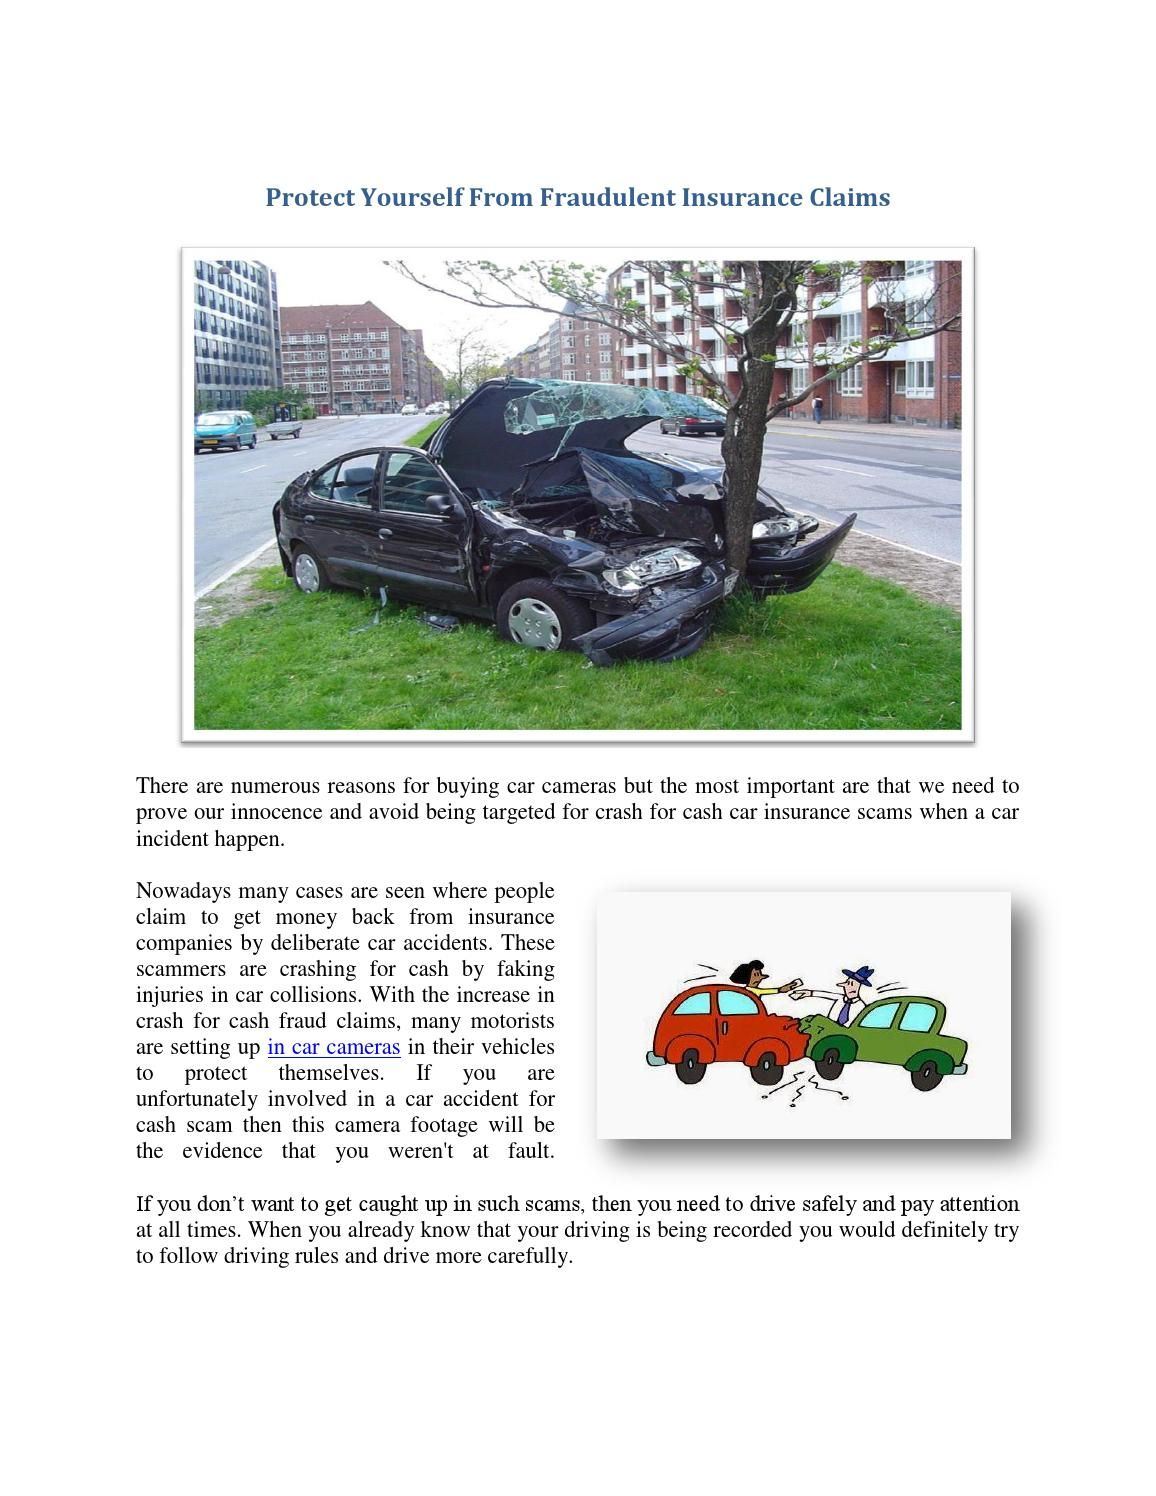 Protect Yourself From Fraudulent Insurance Claims With Images